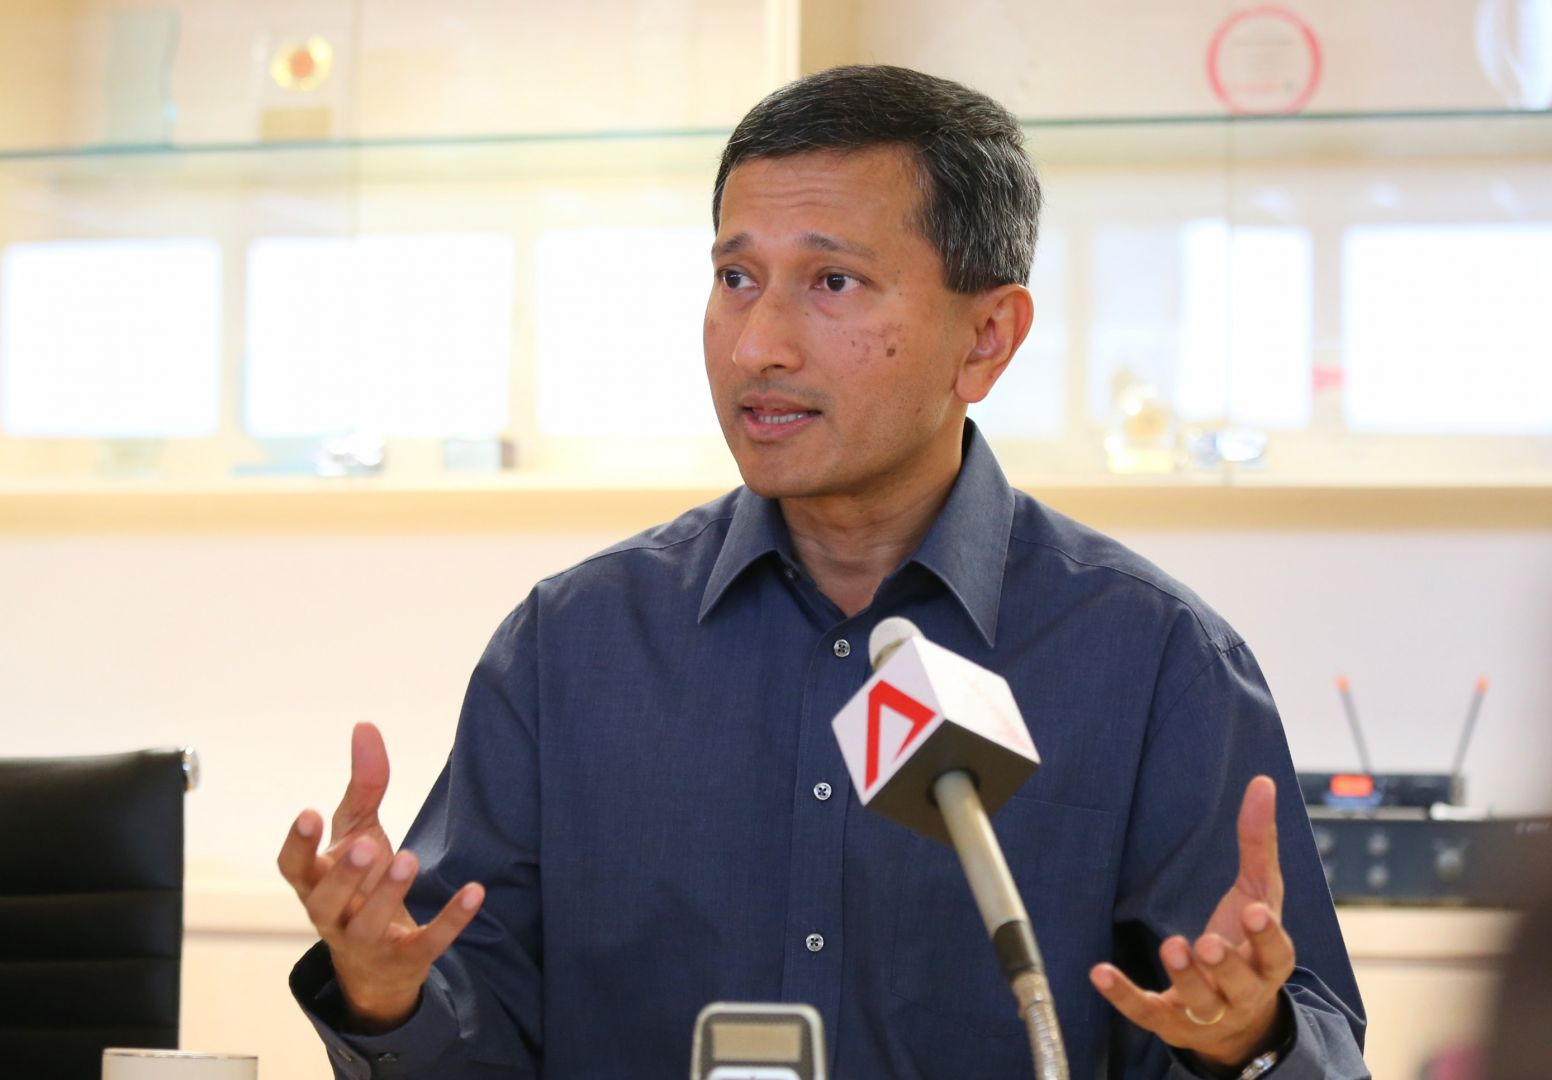 Dr Vivian Balakrishnan, Minister-in-charge of the Smart Nation Programme Office in Singapore